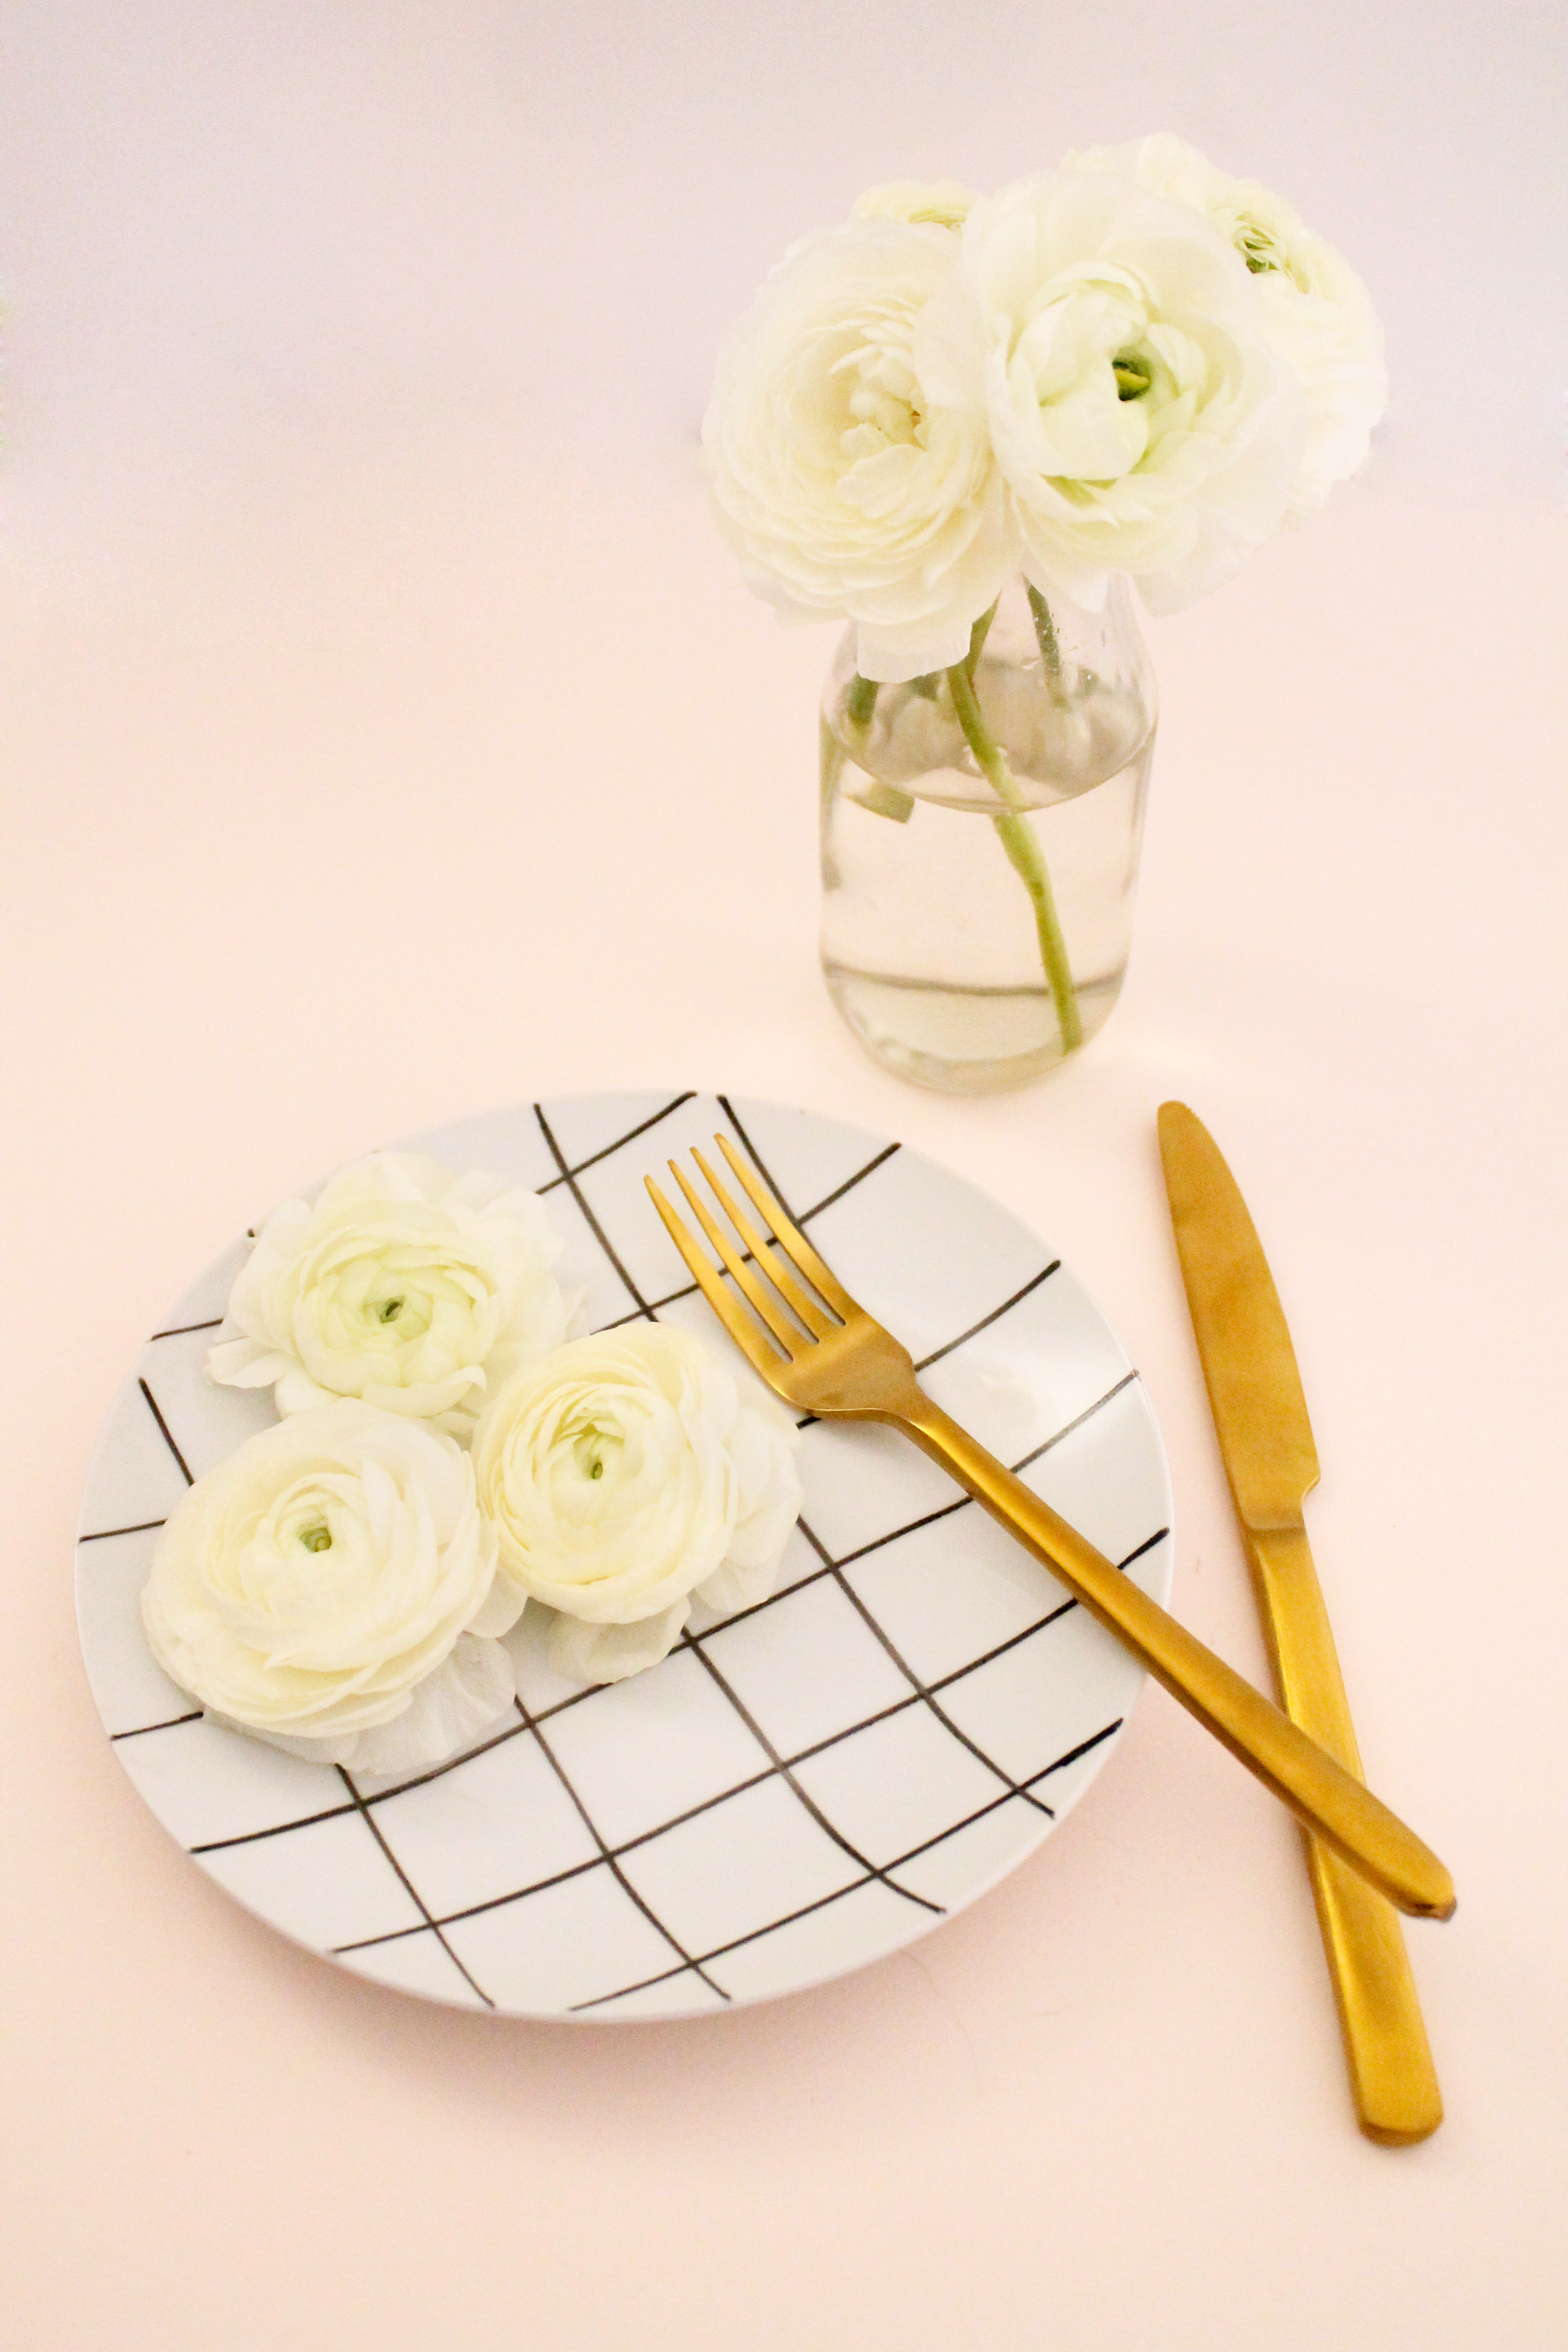 diy-assiettes-ceramique-fini-4